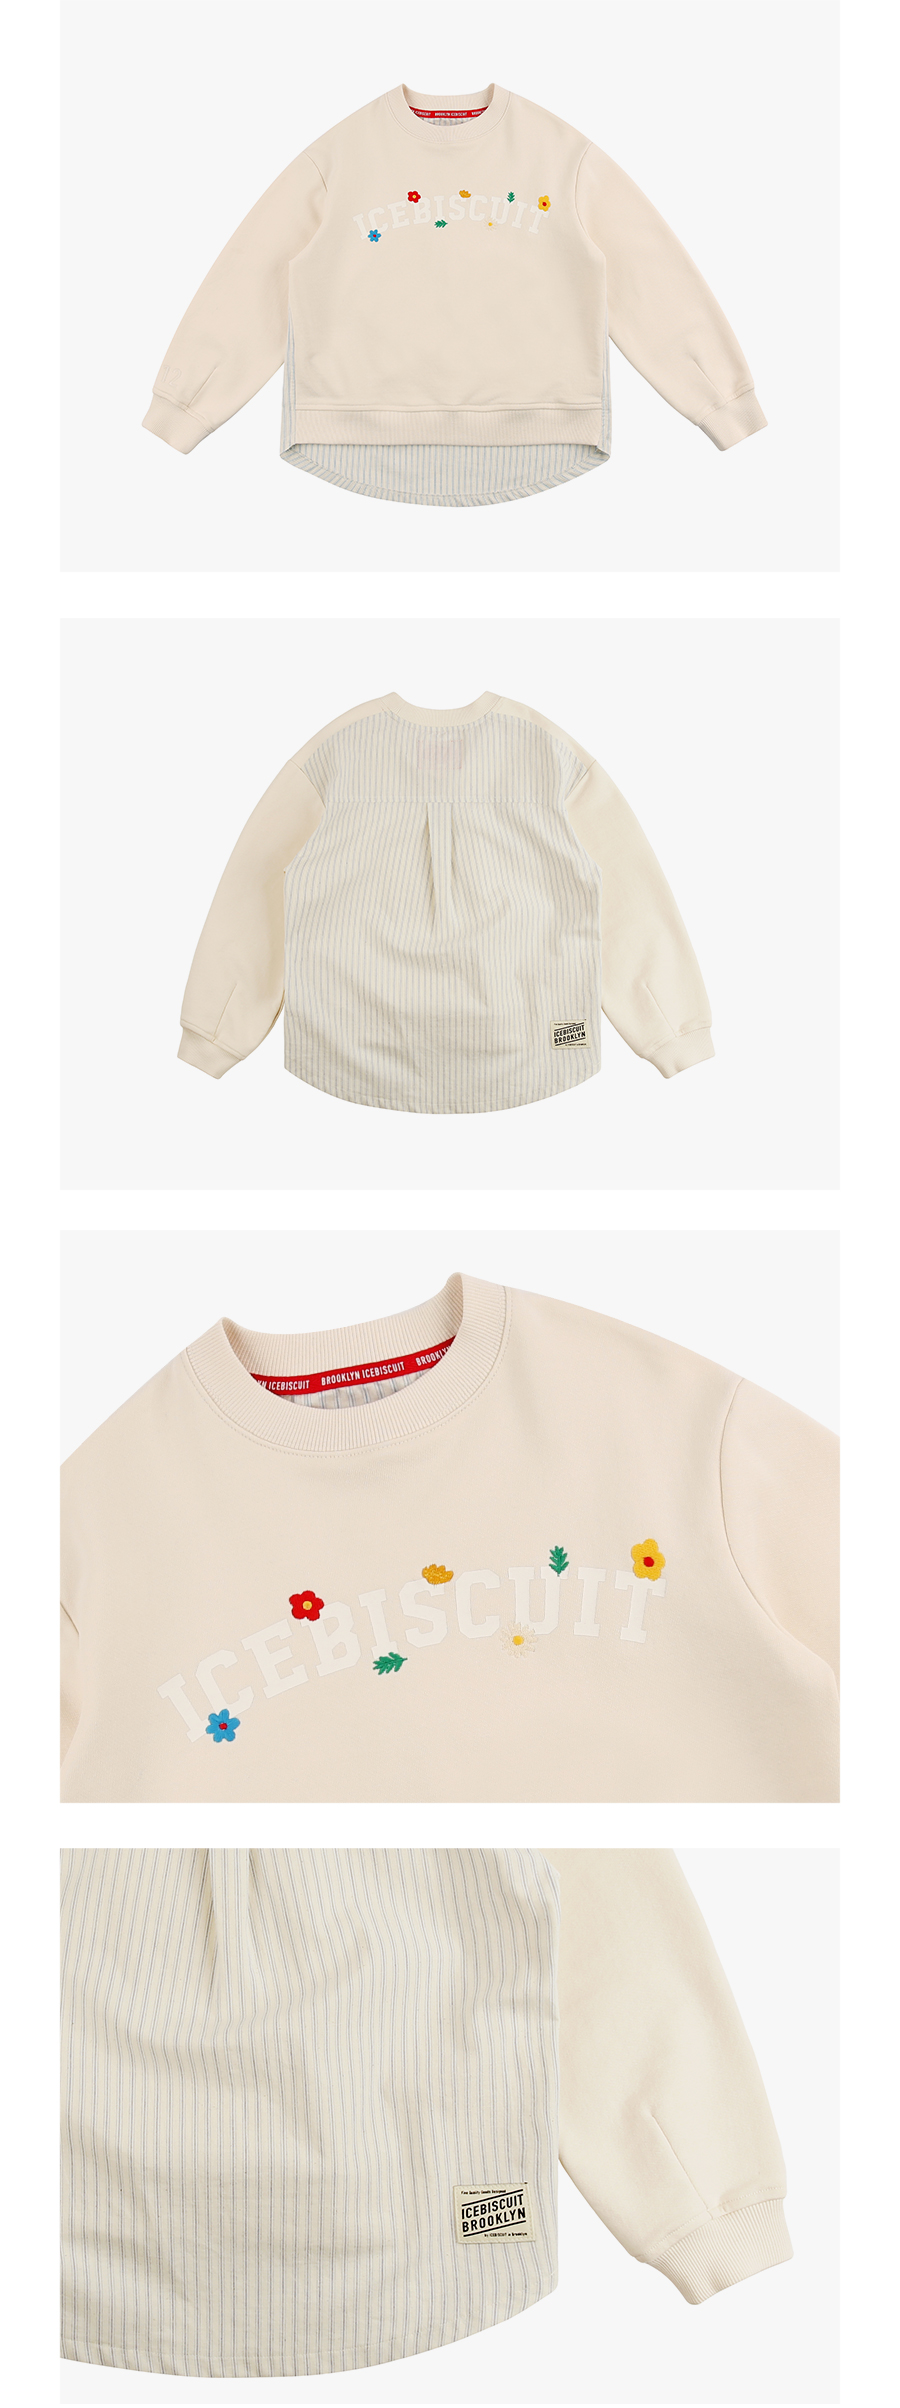 Floral icebiscuit layered sweatshirt 상세 이미지